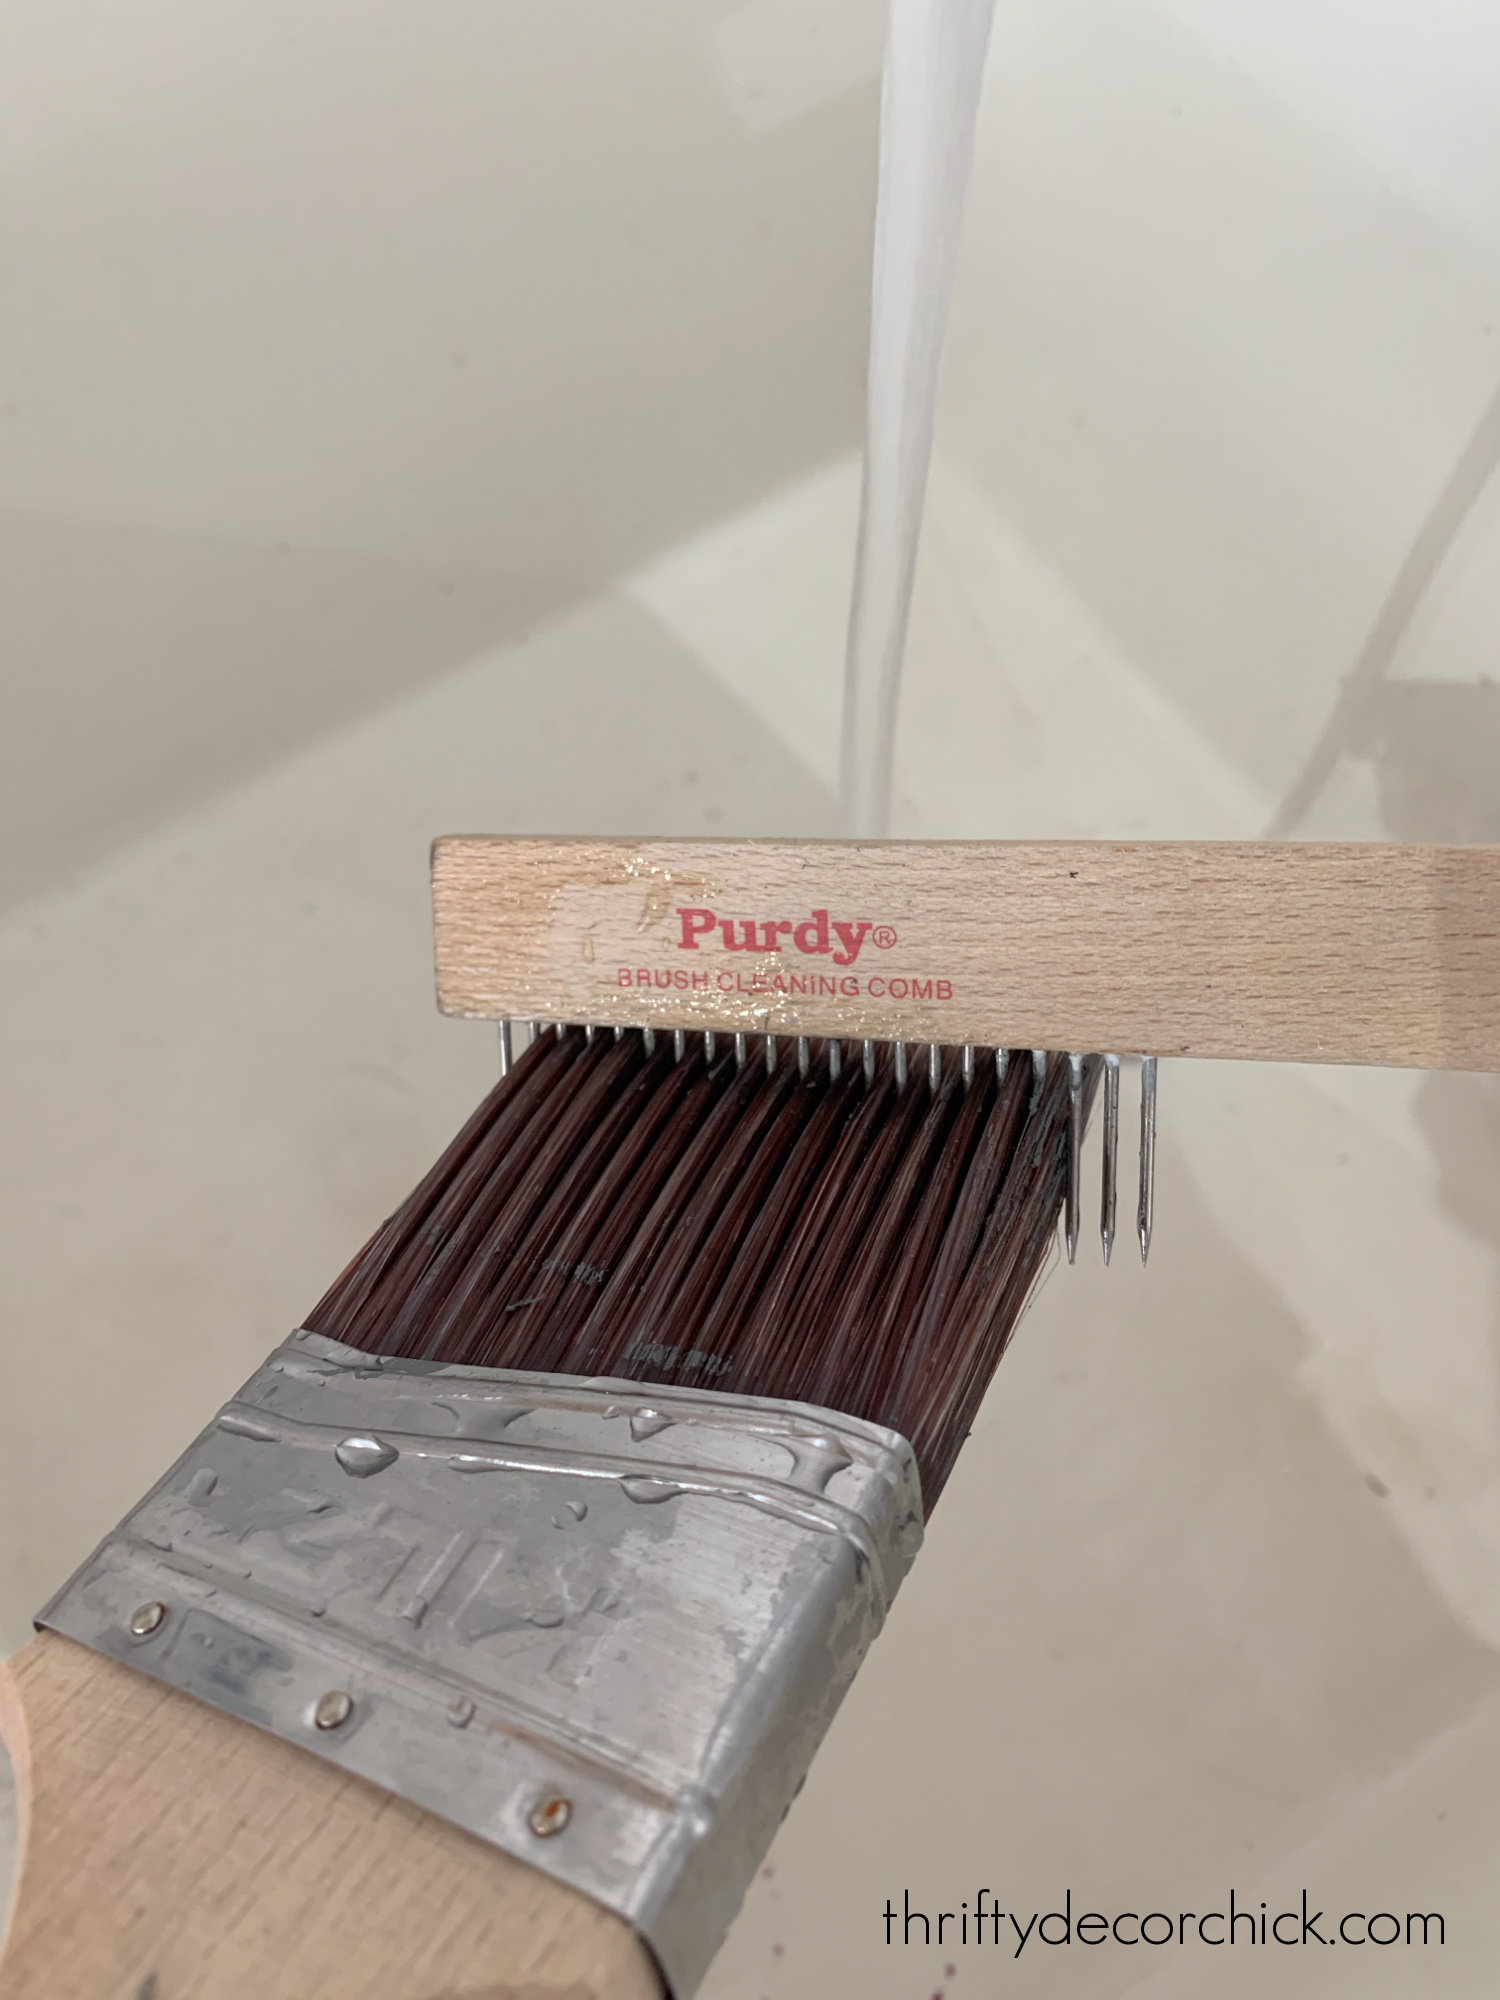 paint brush cleaning comb